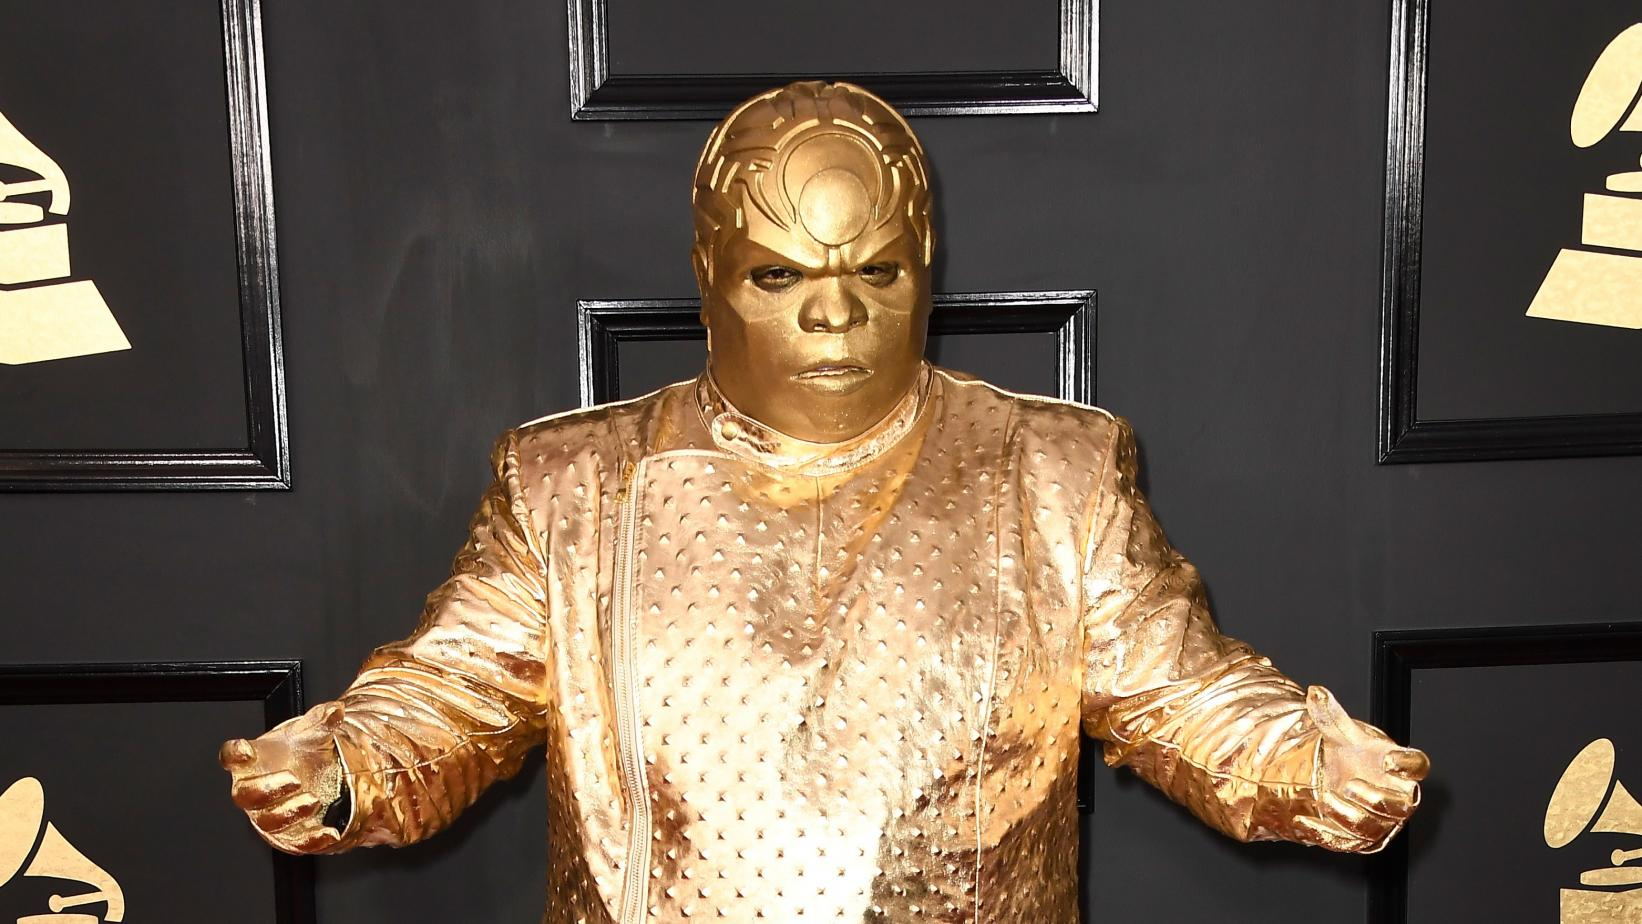 Cee Lo Green at the 59th GRAMMY Awards, 2017